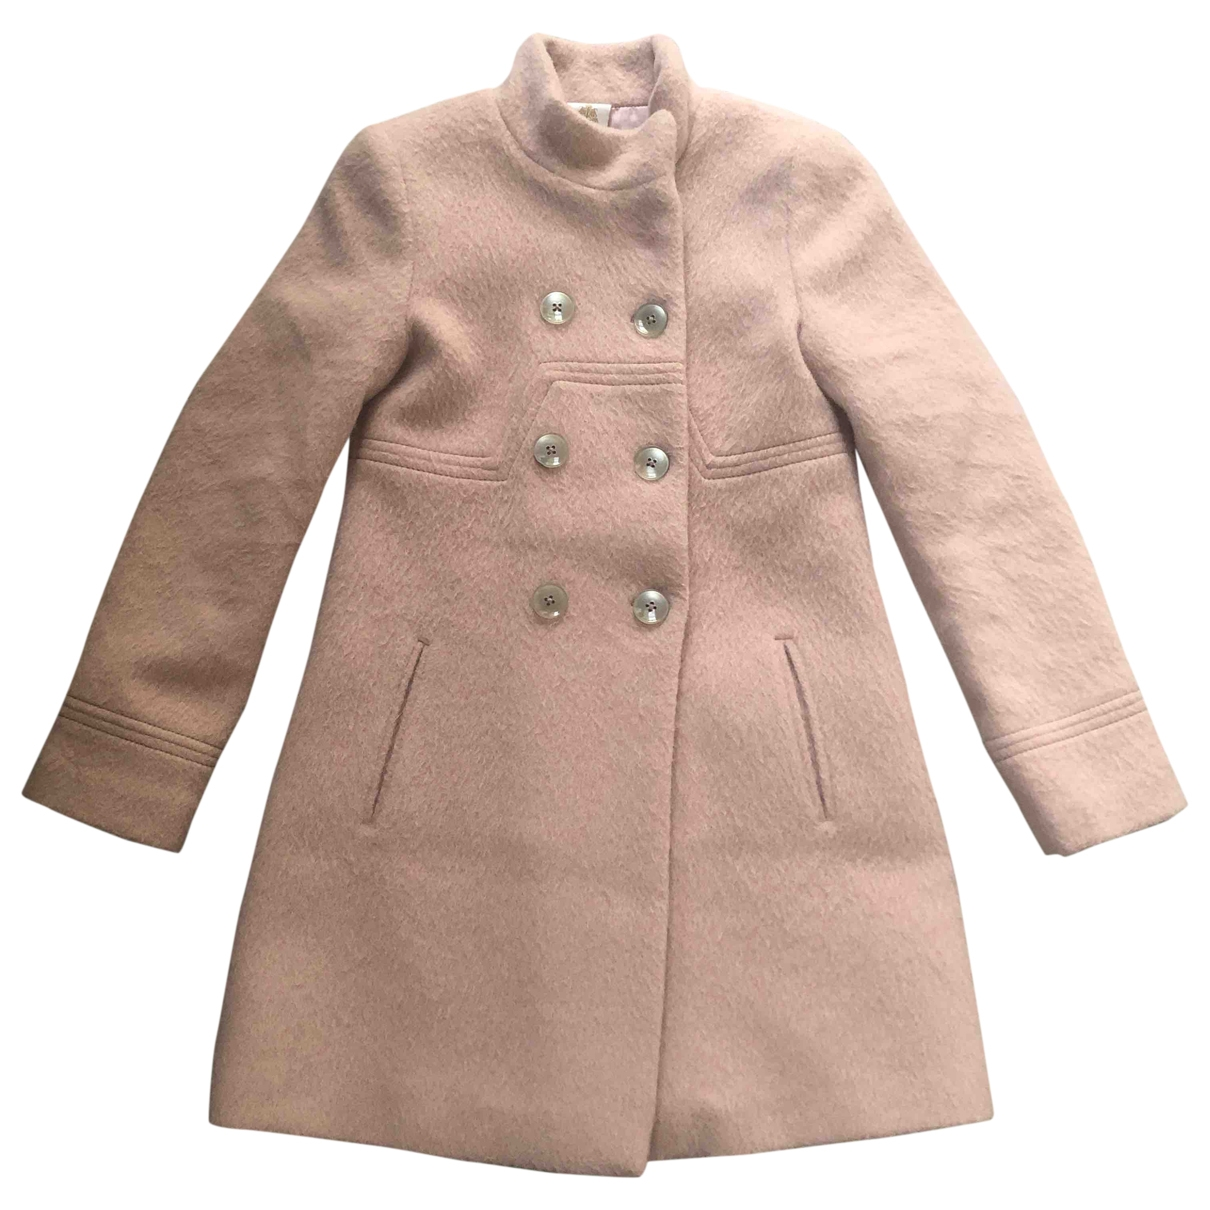 Dondup \N Pink Wool jacket & coat for Kids 8 years - up to 128cm FR